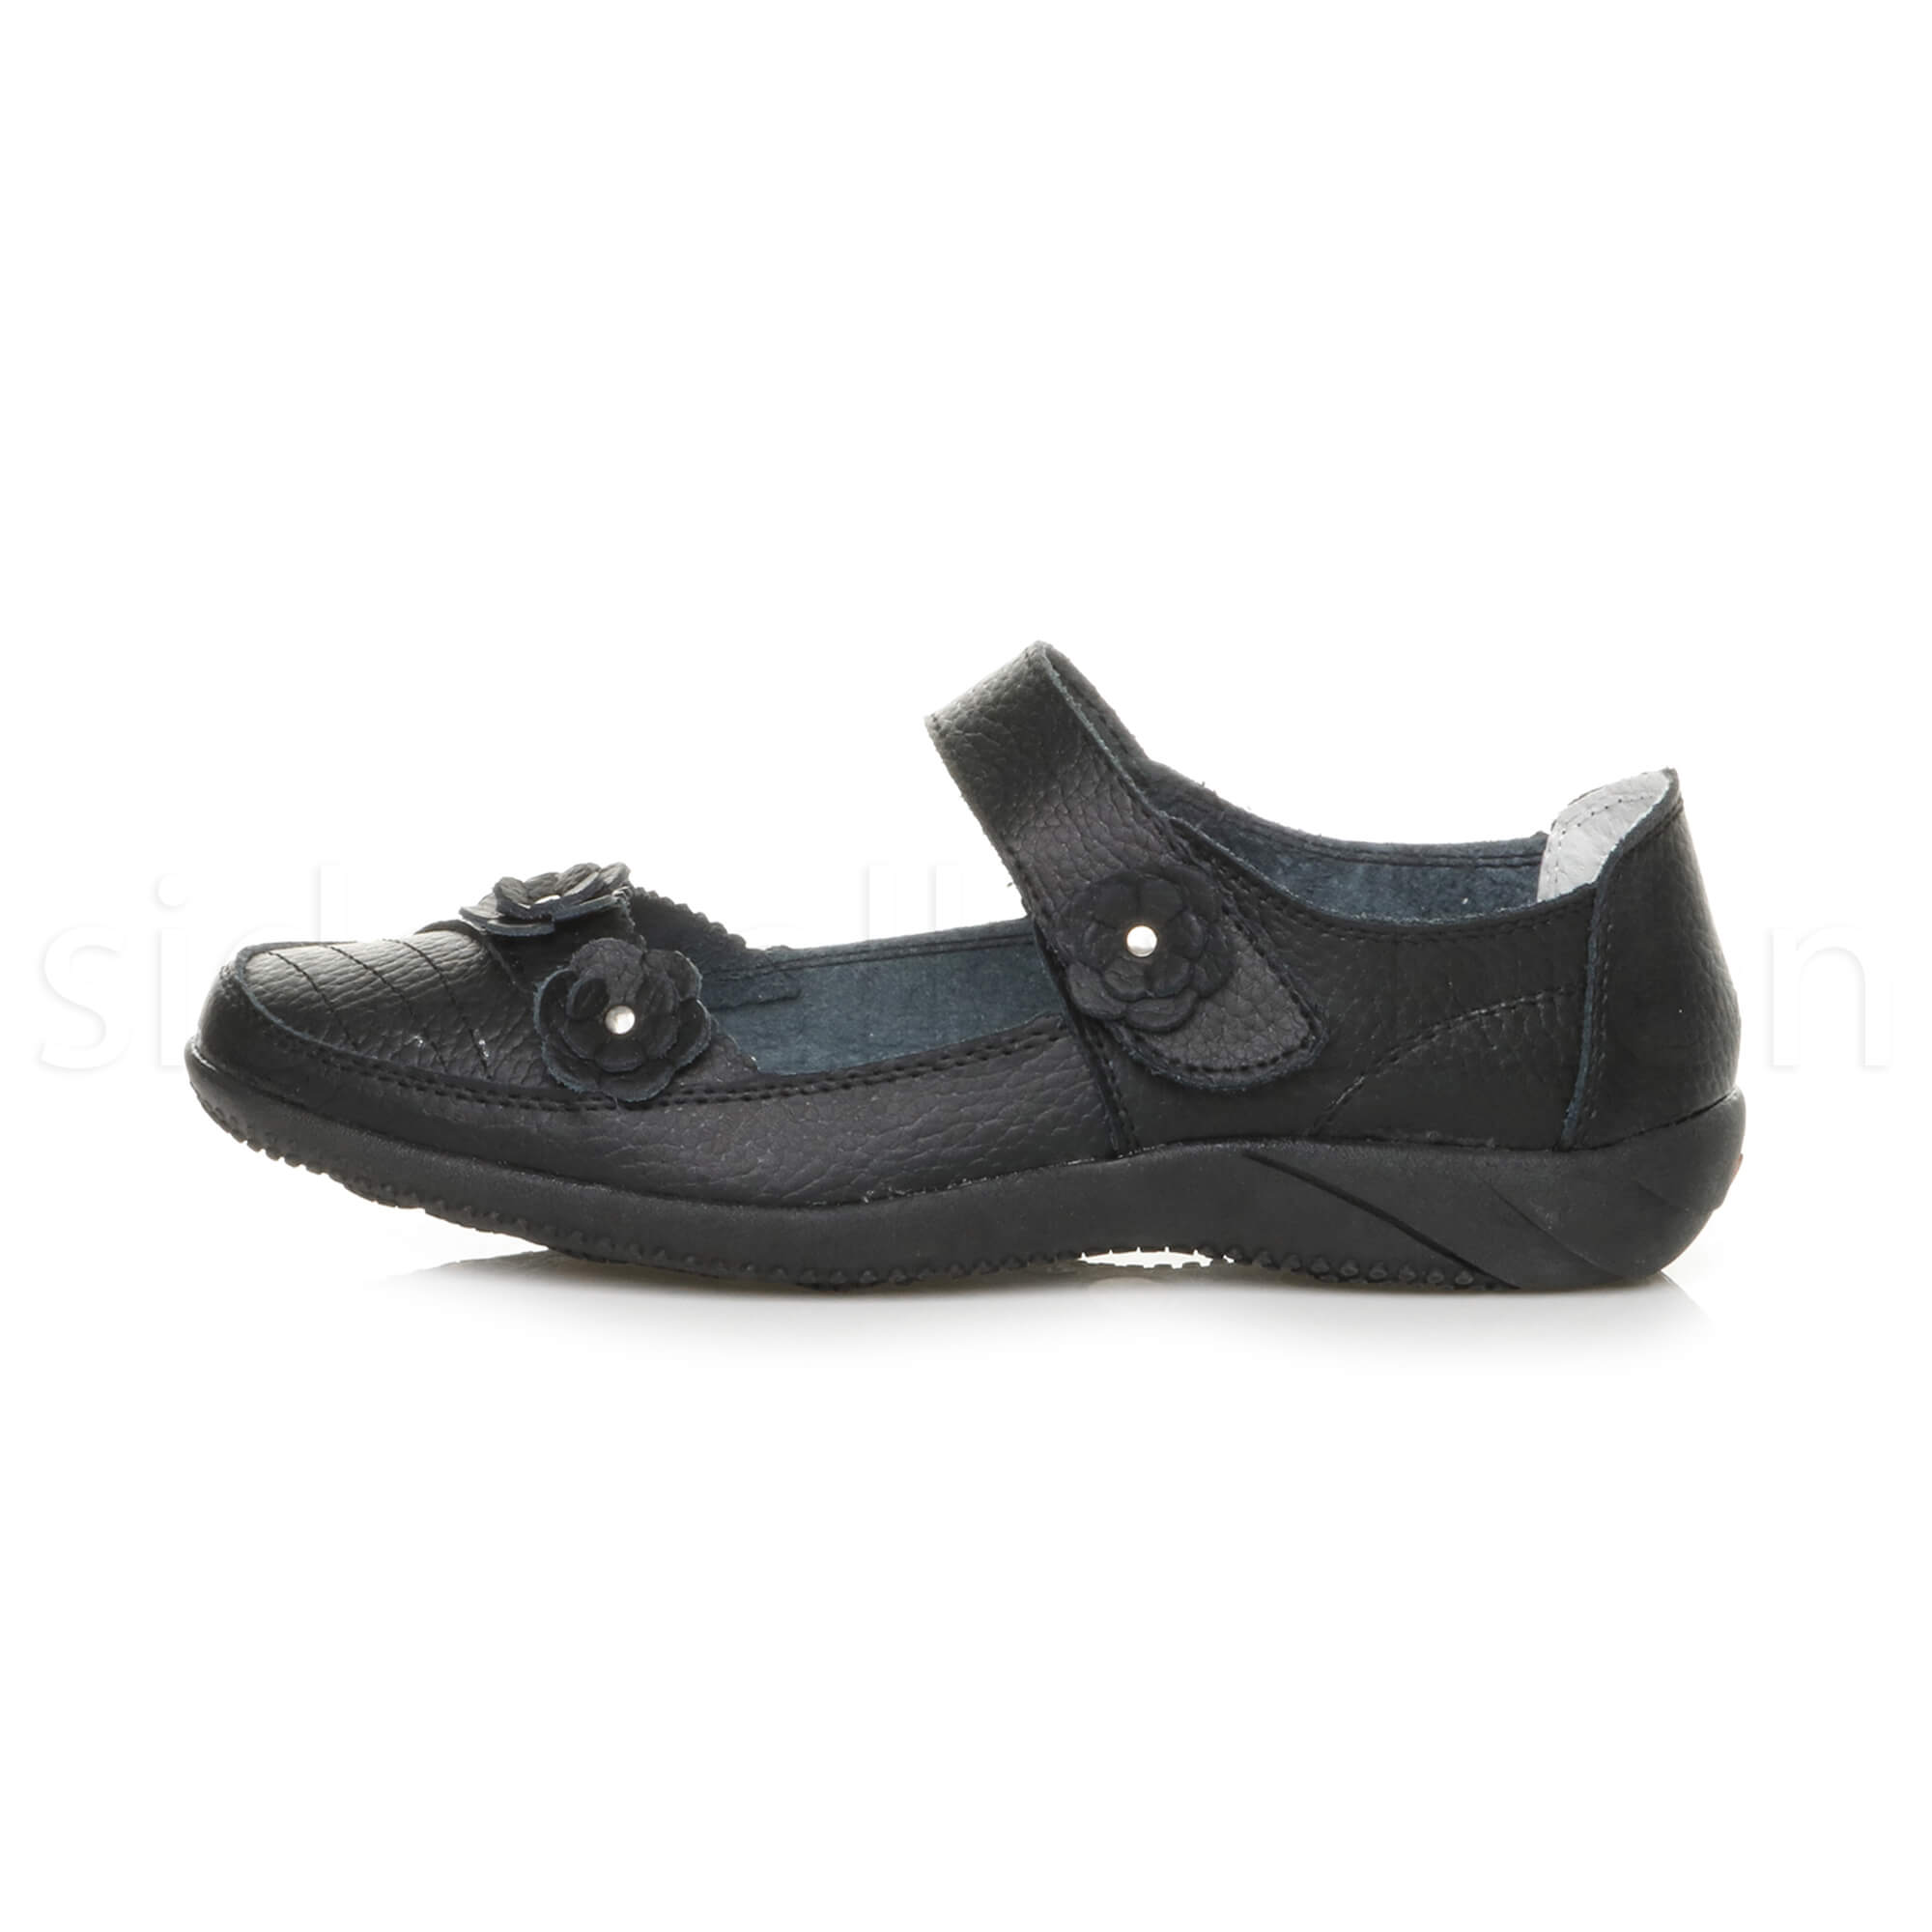 Womens-ladies-leather-comfort-walking-casual-sandals-mary-jane-strap-shoes-size thumbnail 8